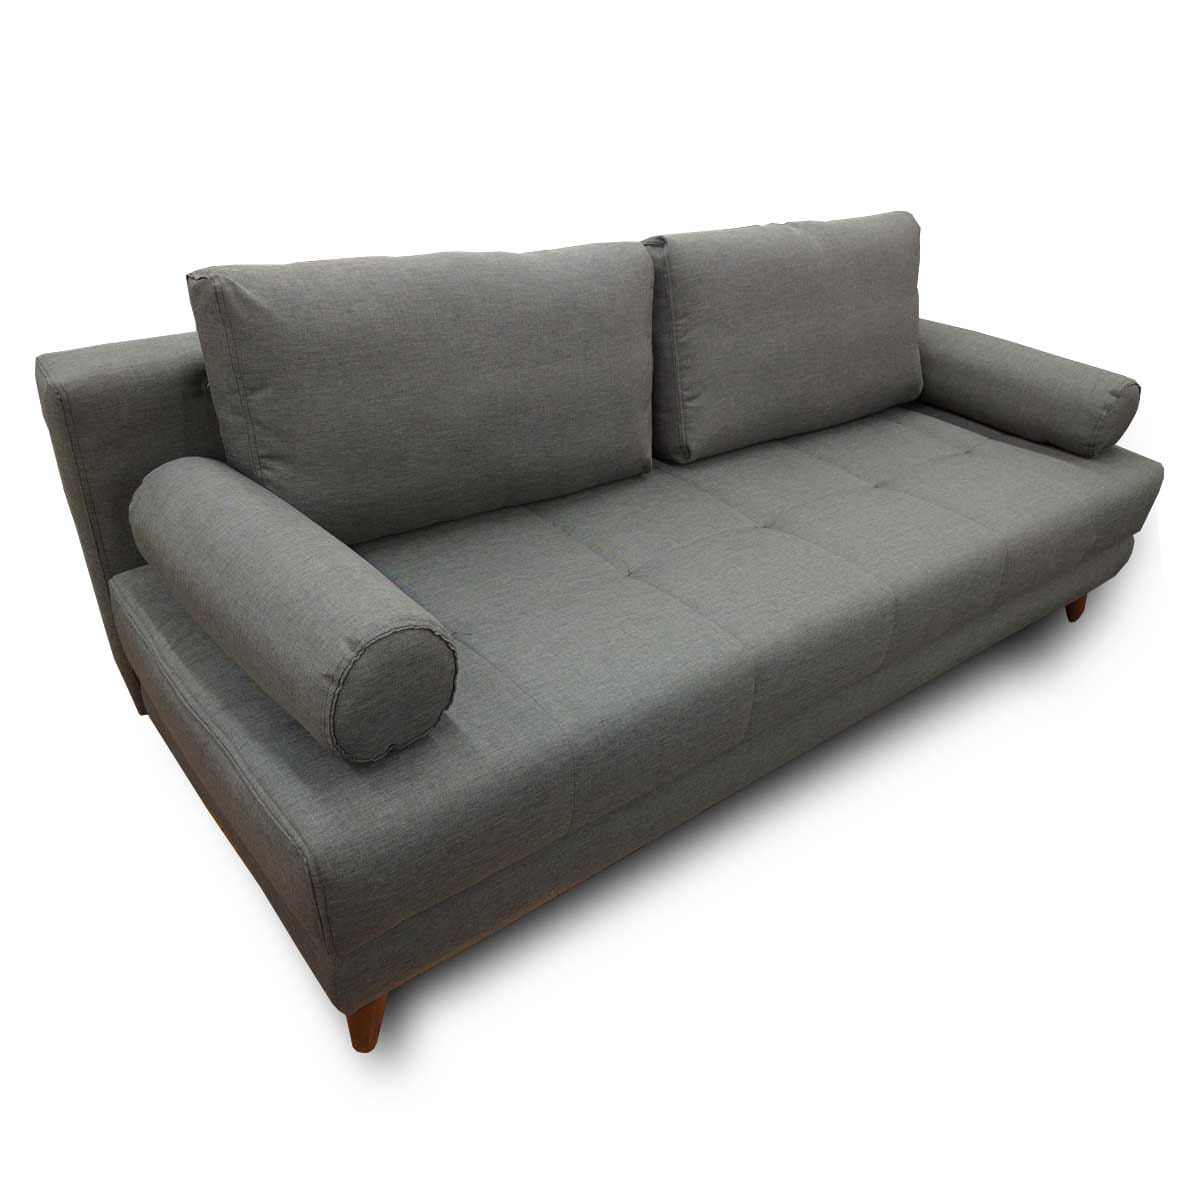 Brilliant Stella Diego Dark Gray Convertible Sofa Bed Queen Sleeper By Istikbal Furniture Camellatalisay Diy Chair Ideas Camellatalisaycom